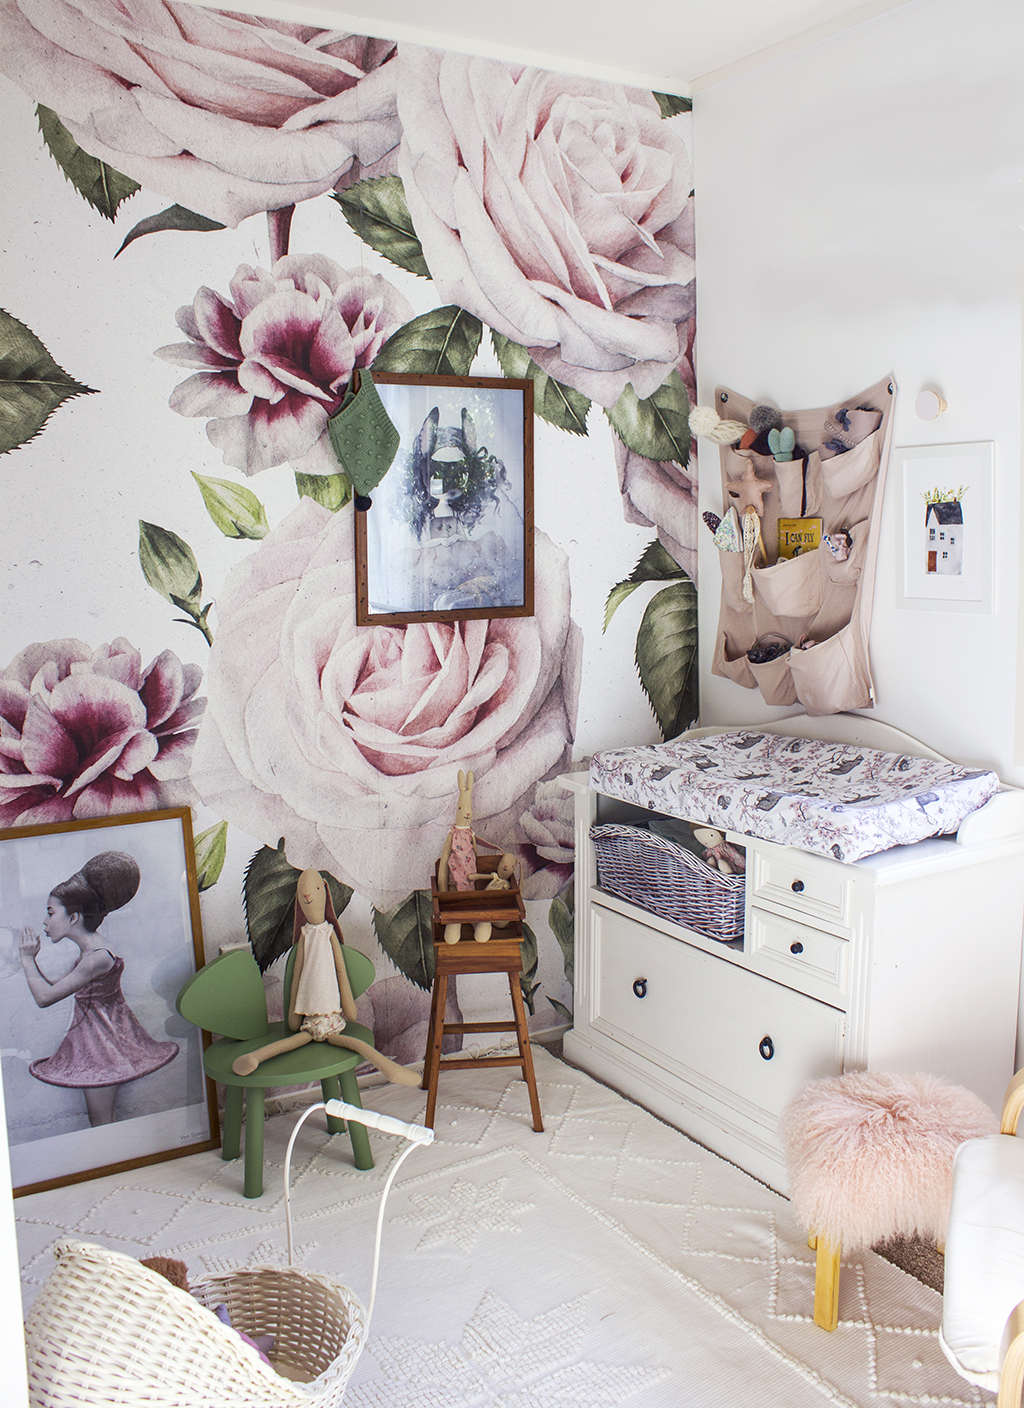 Piper_Nursery_Makeover_Feature_Floral_Wallpaper_Styled8.jpg